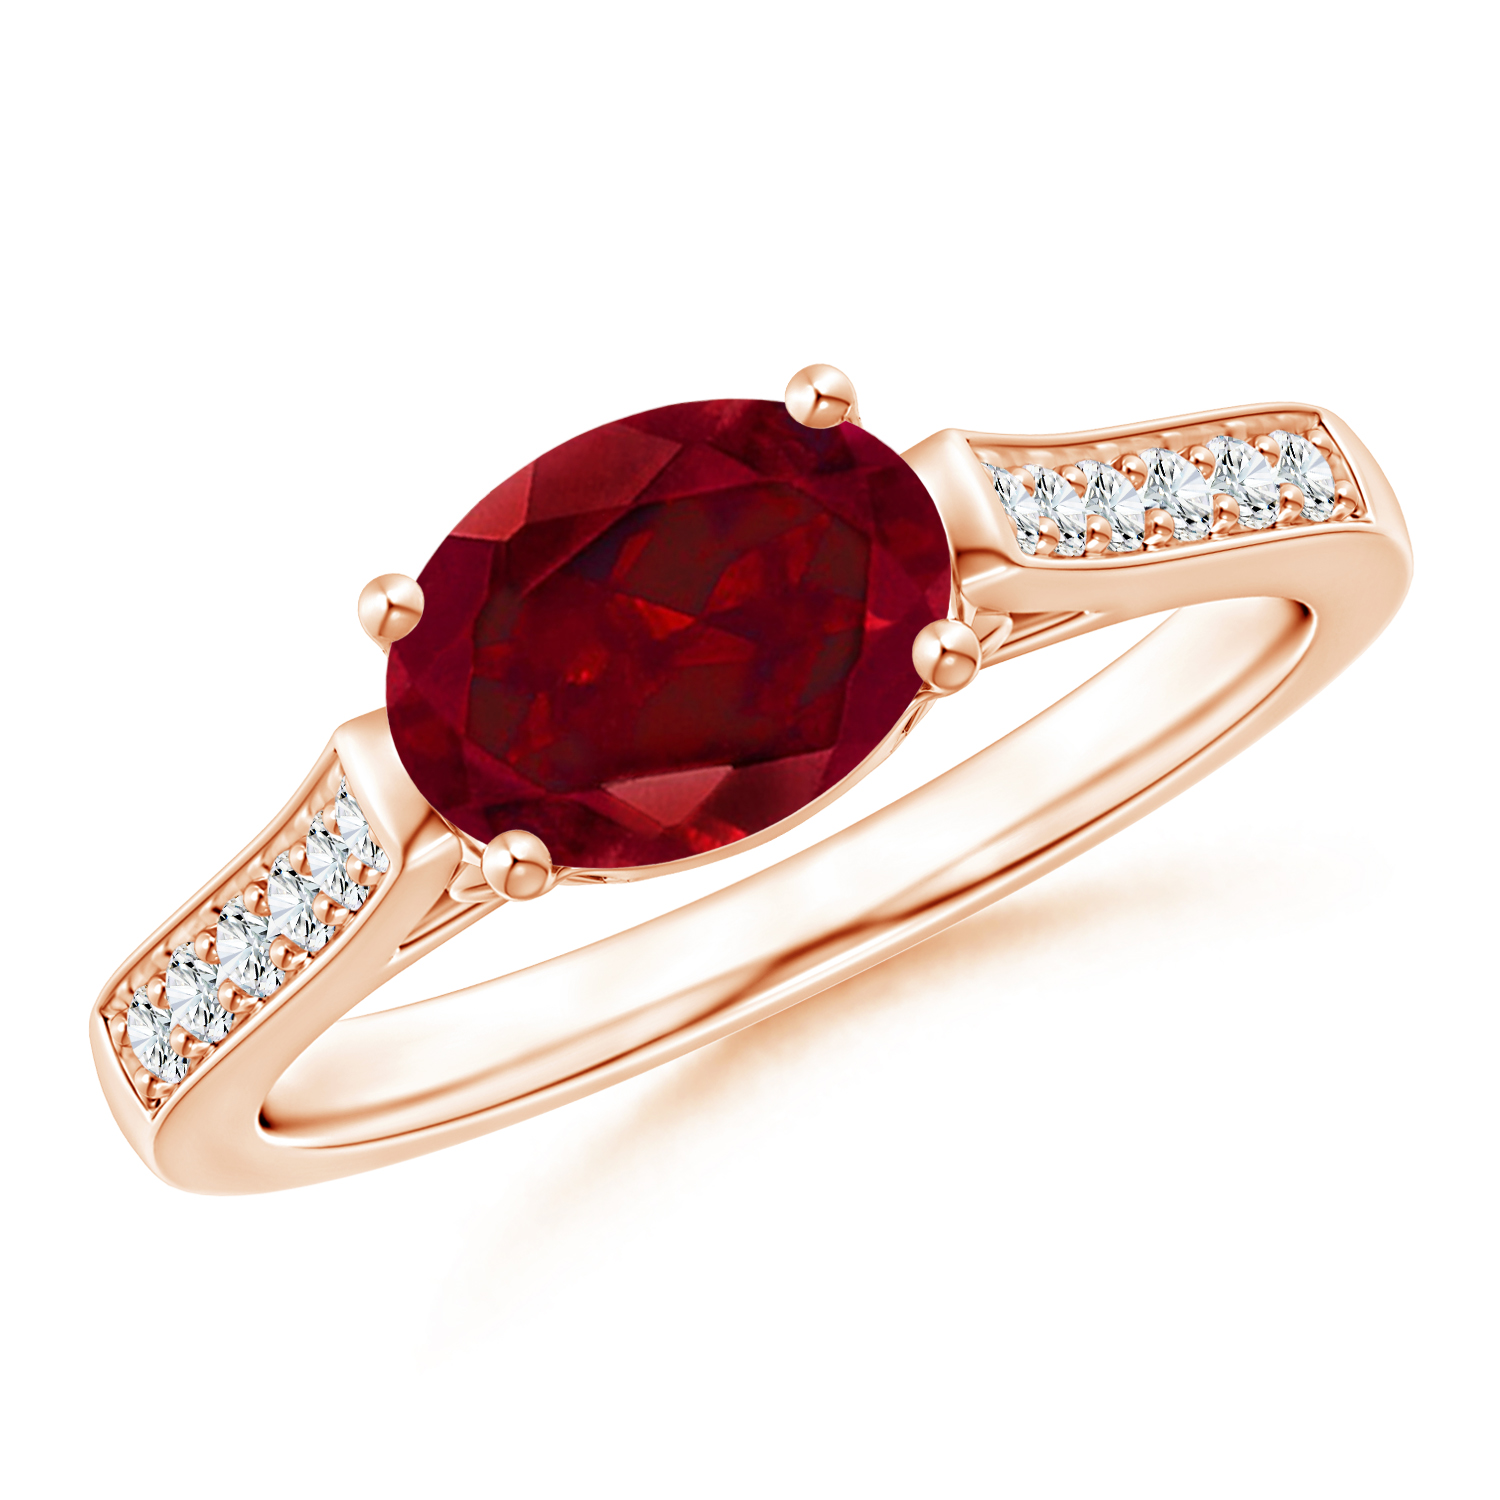 East West Set Oval Garnet Solitaire Ring with Diamond Accents - Angara.com